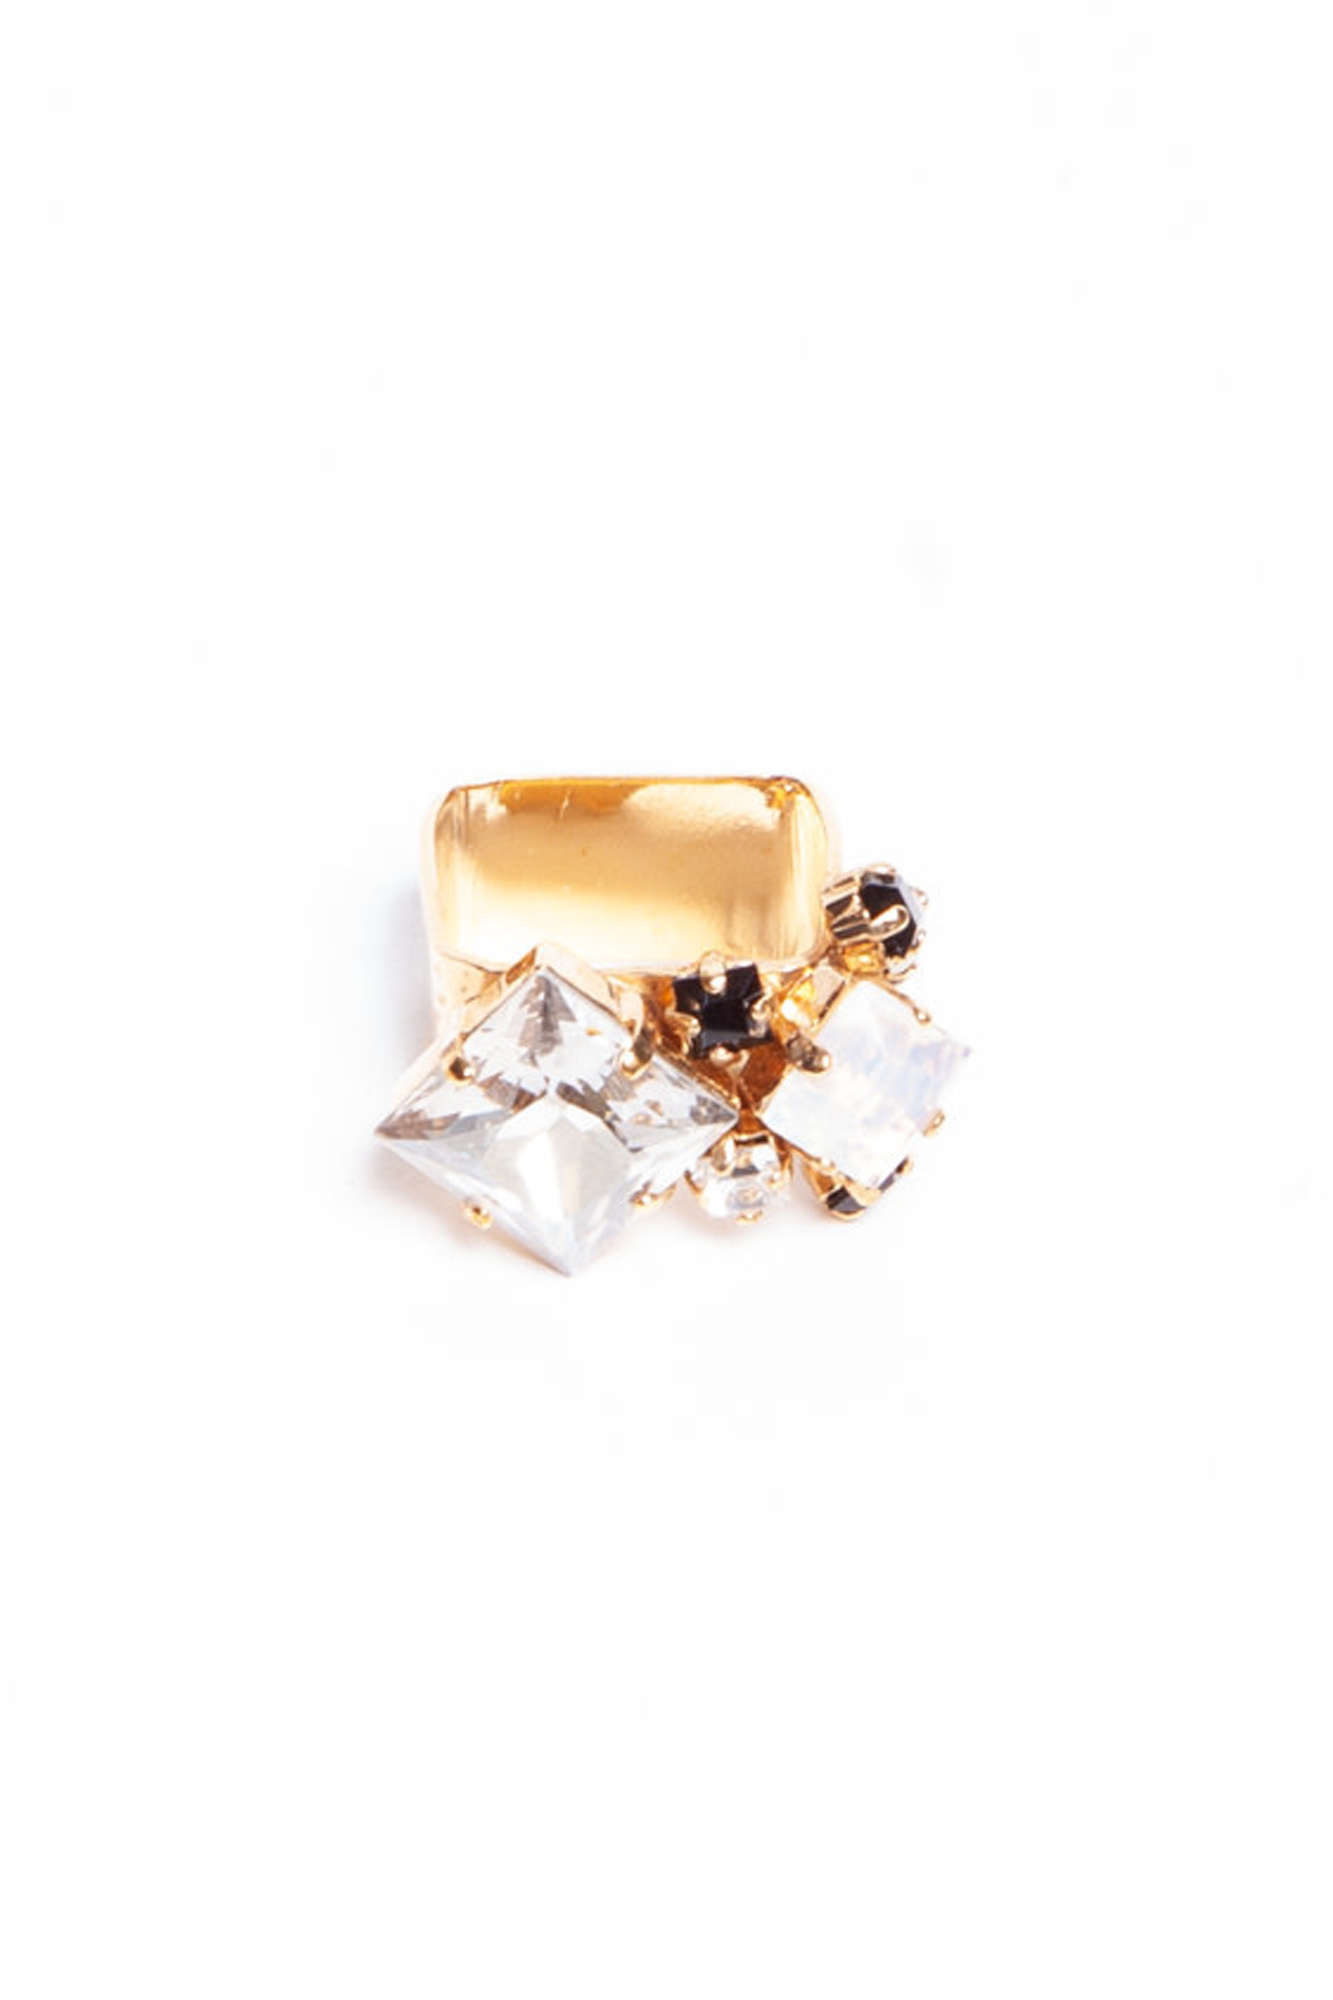 Sabrina Dehoff SQUARE RING WITH INCHED JEWELERY - NEW